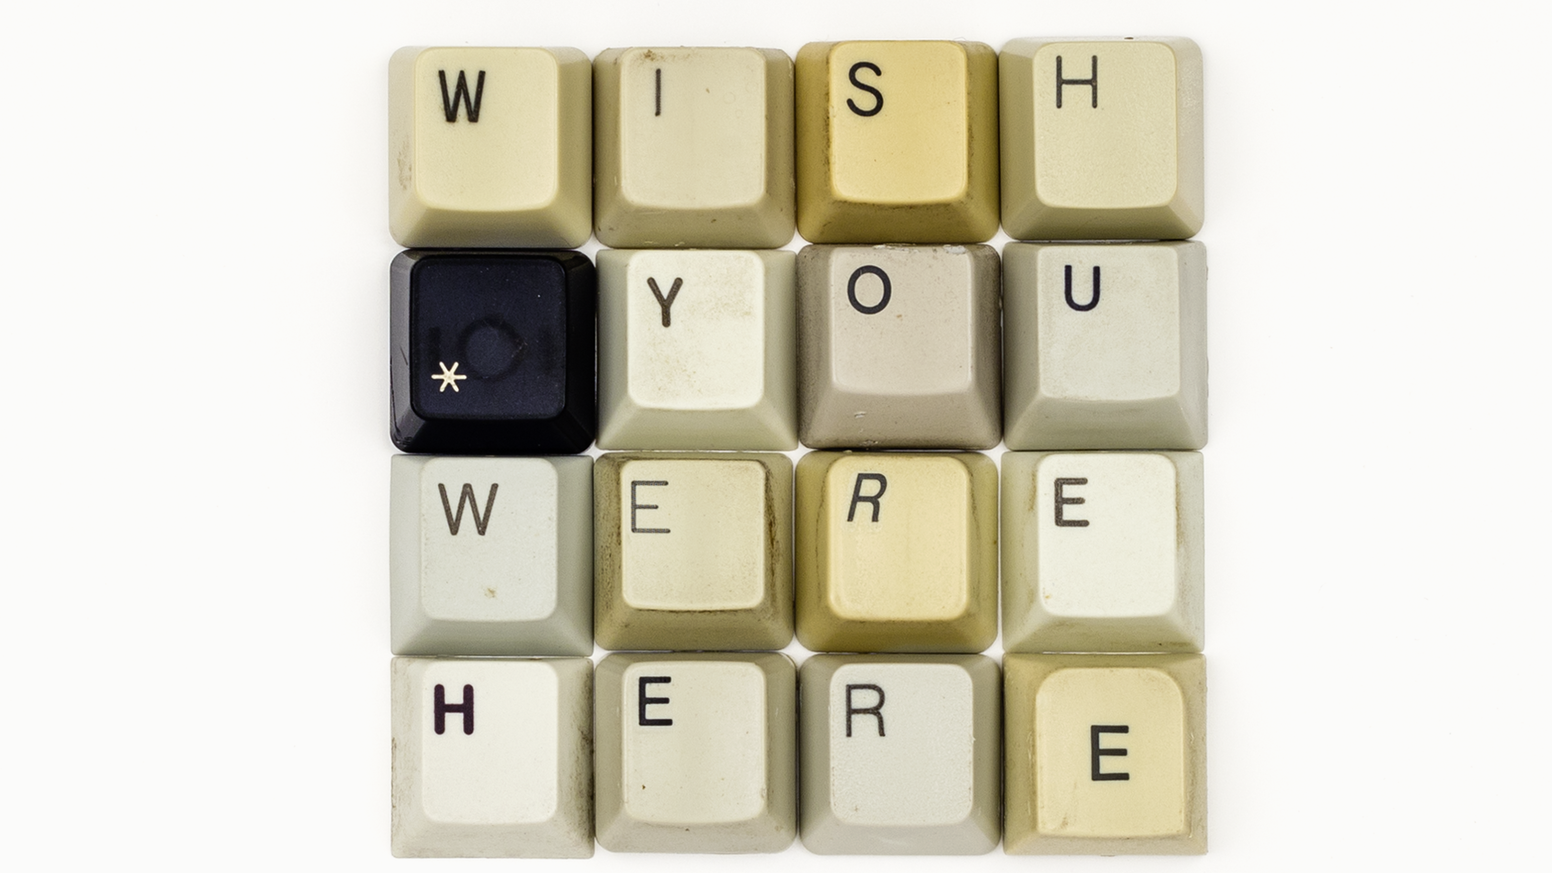 """This project is about creating the  28th Typographic Postcard that says """"WISH YOU WERE HERE"""" set in used keyboard keys."""